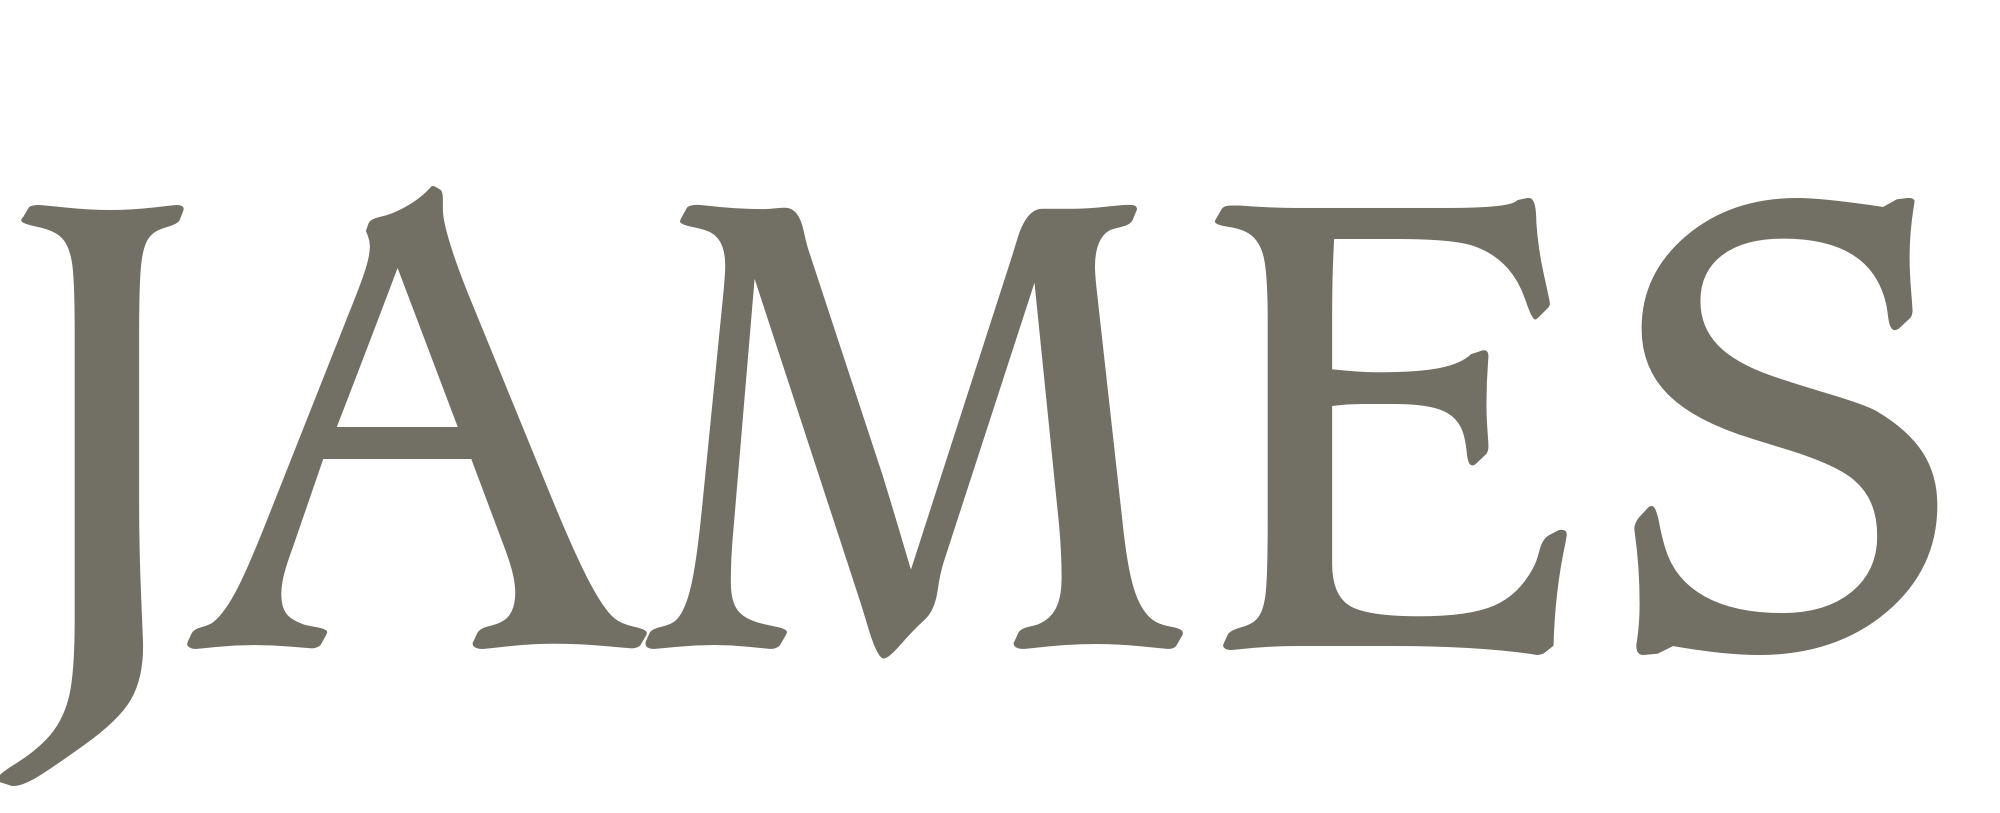 James - Name's Meaning of James